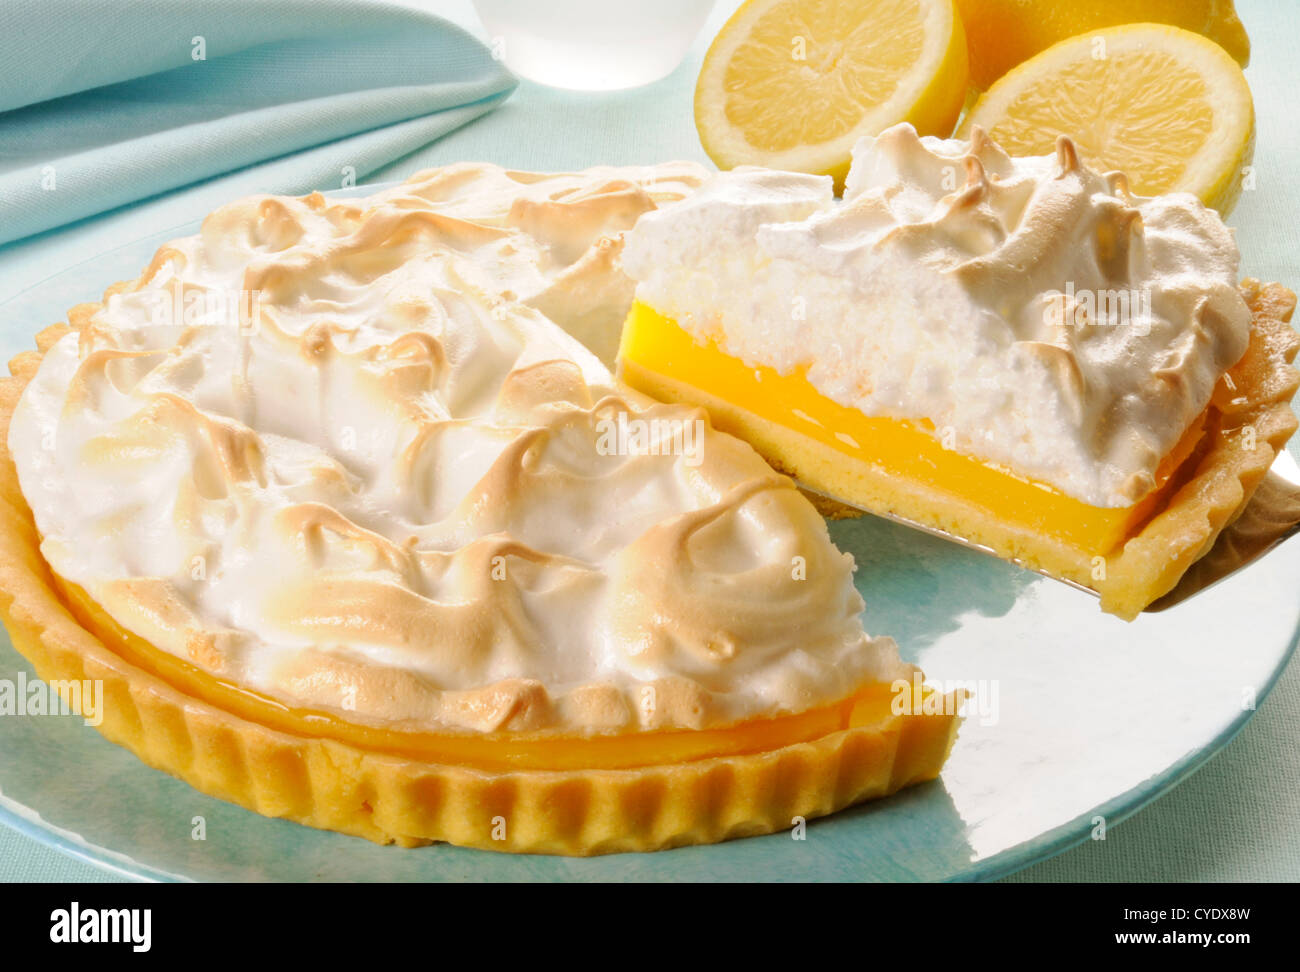 Lemon Meringue Pie - Stock Image